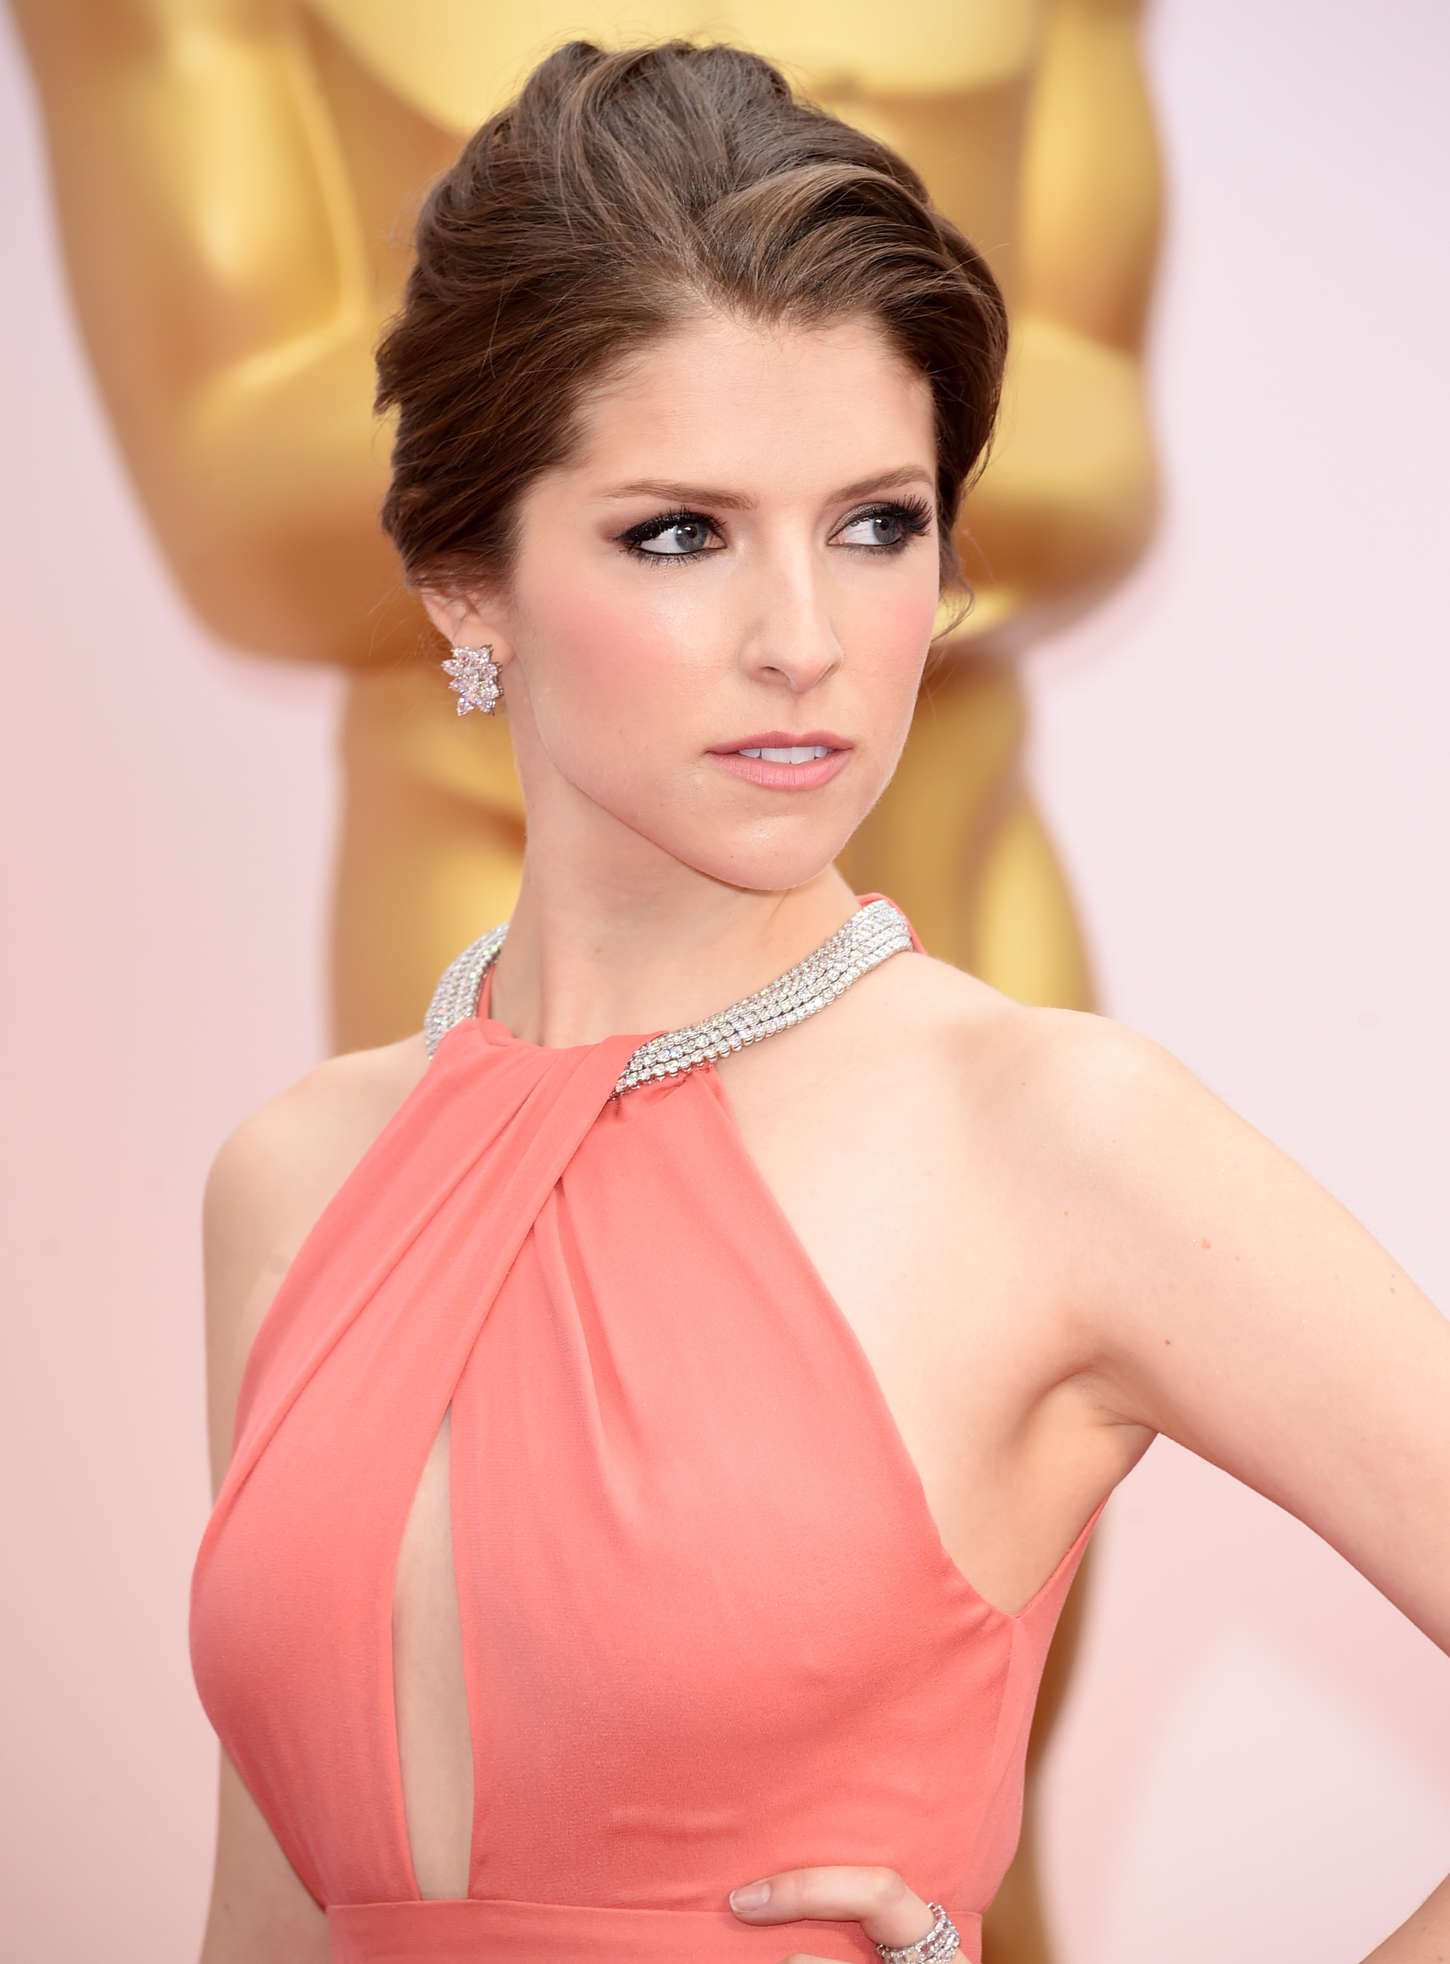 The Best Hairstyles From The Oscars 2015 — Sascha Breuer